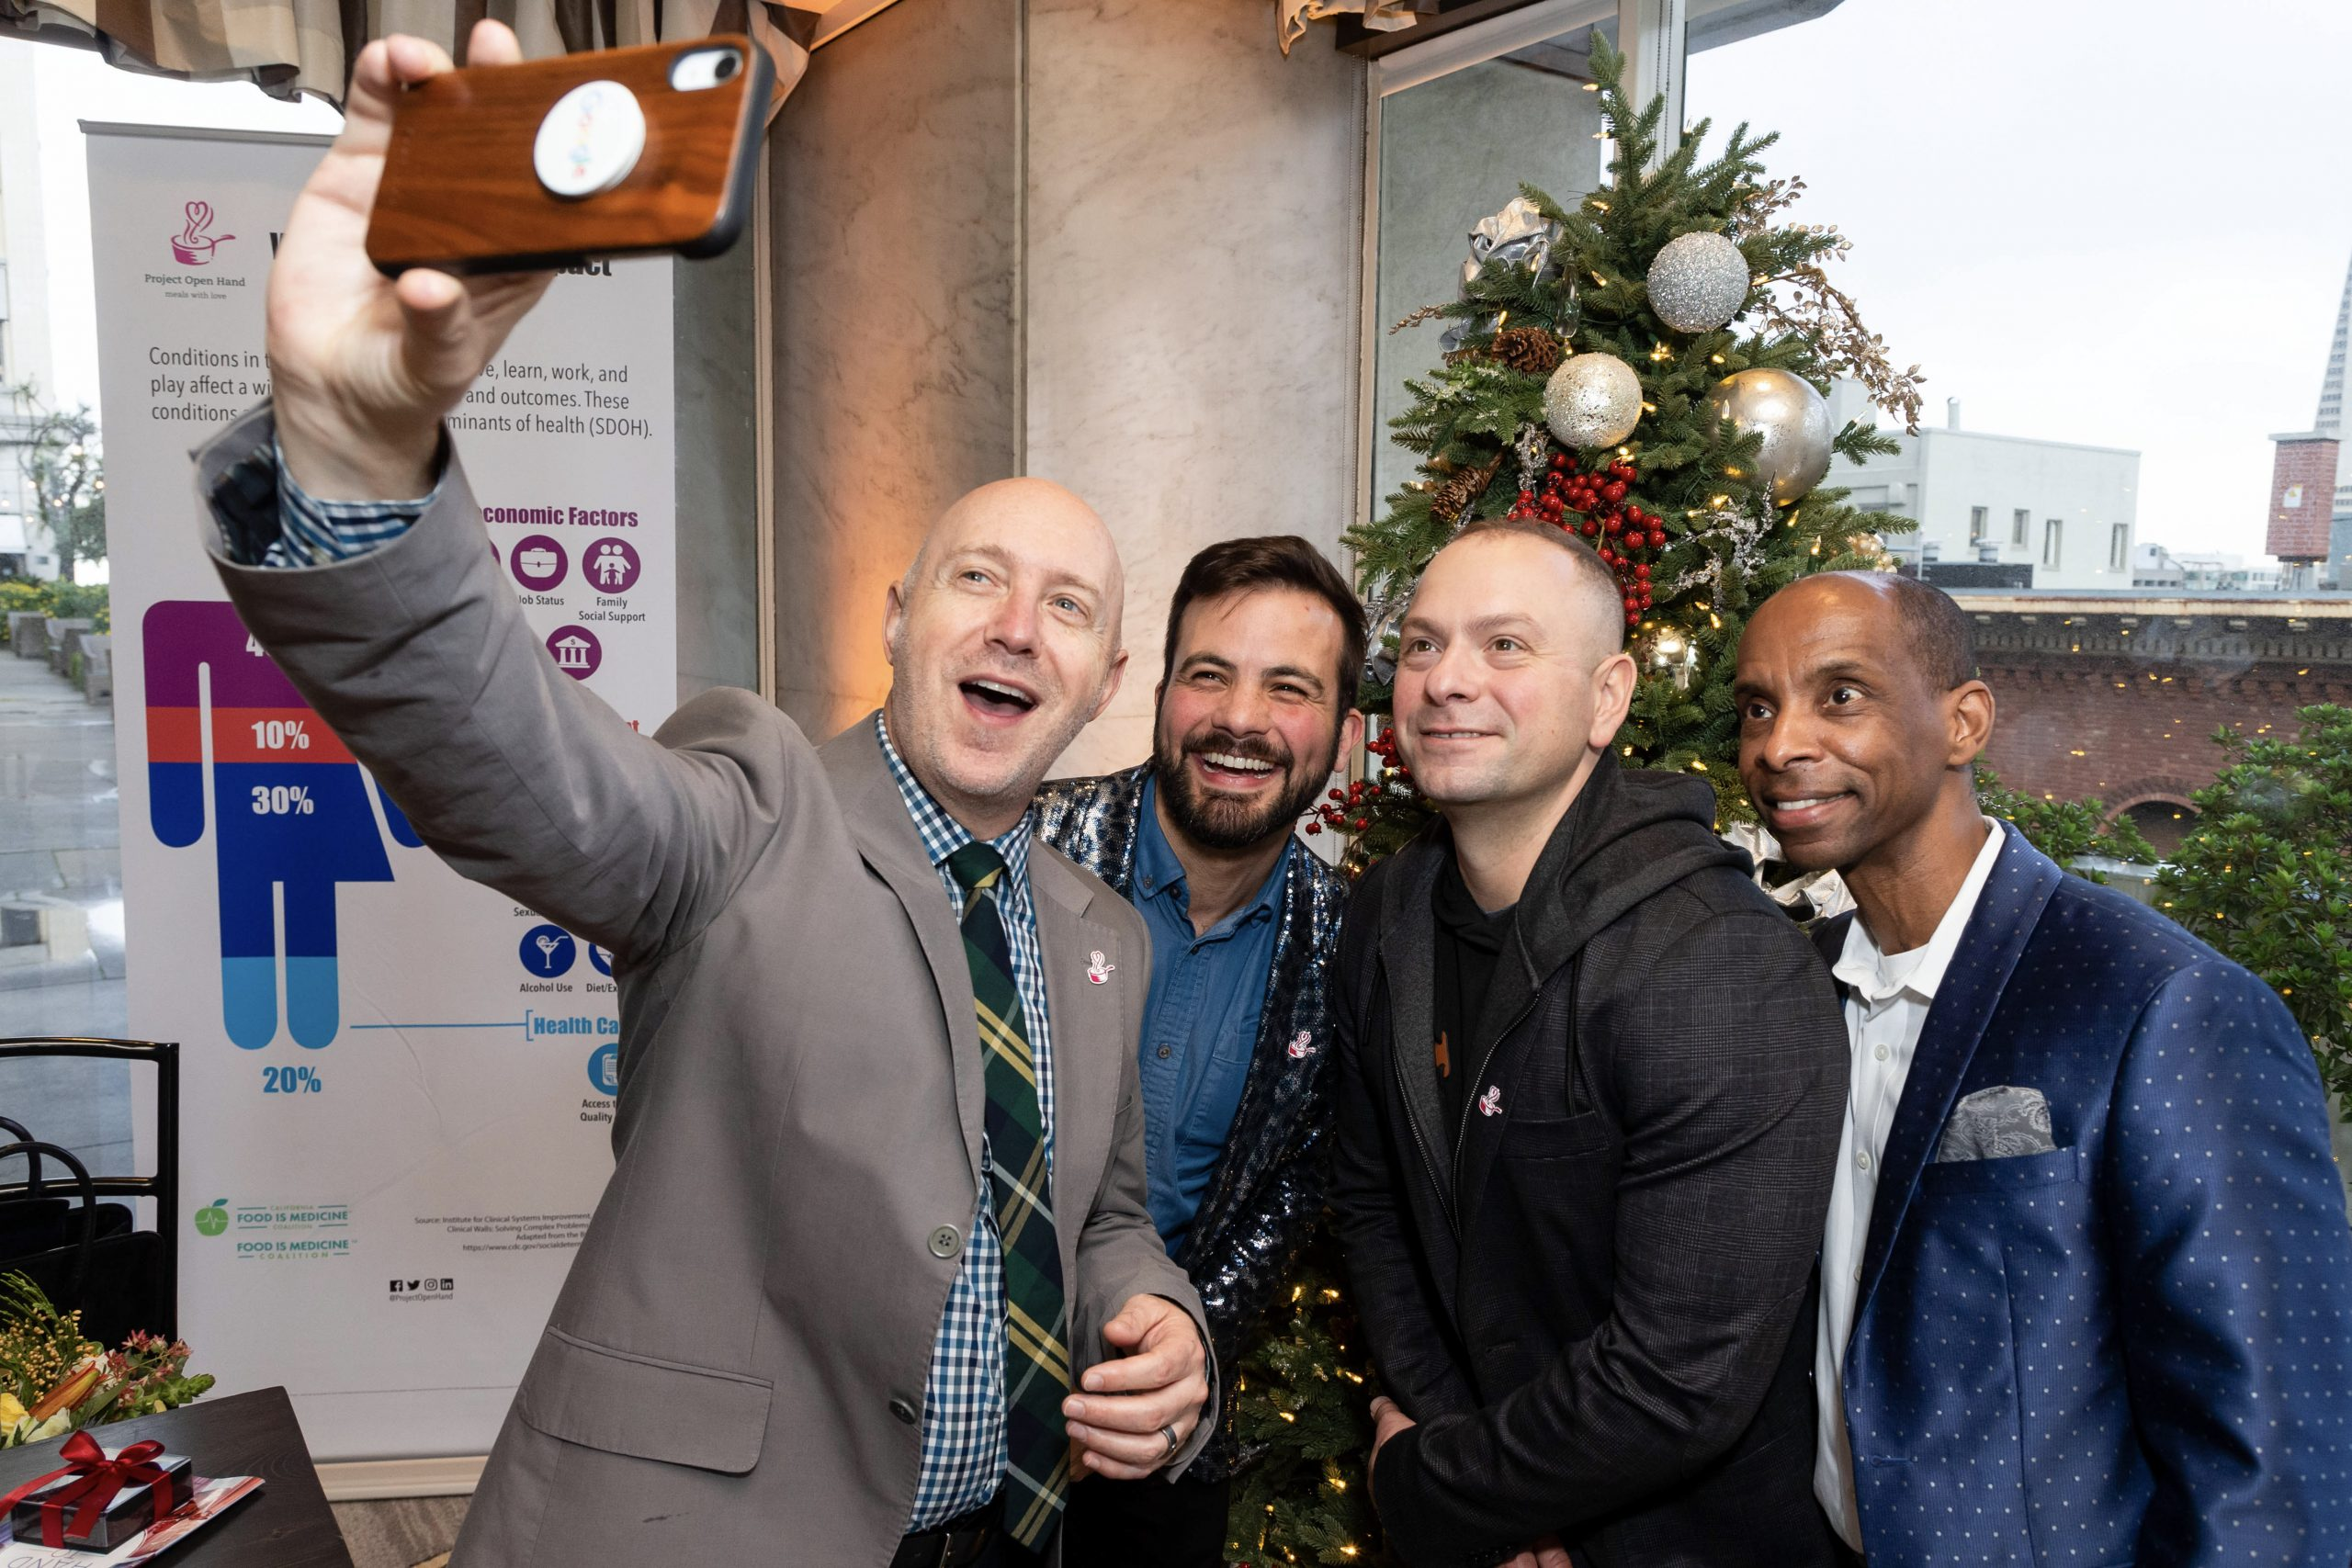 """Guests take a group """"selfie"""" with a Christmas tree and San Francisco's skyline in the background."""